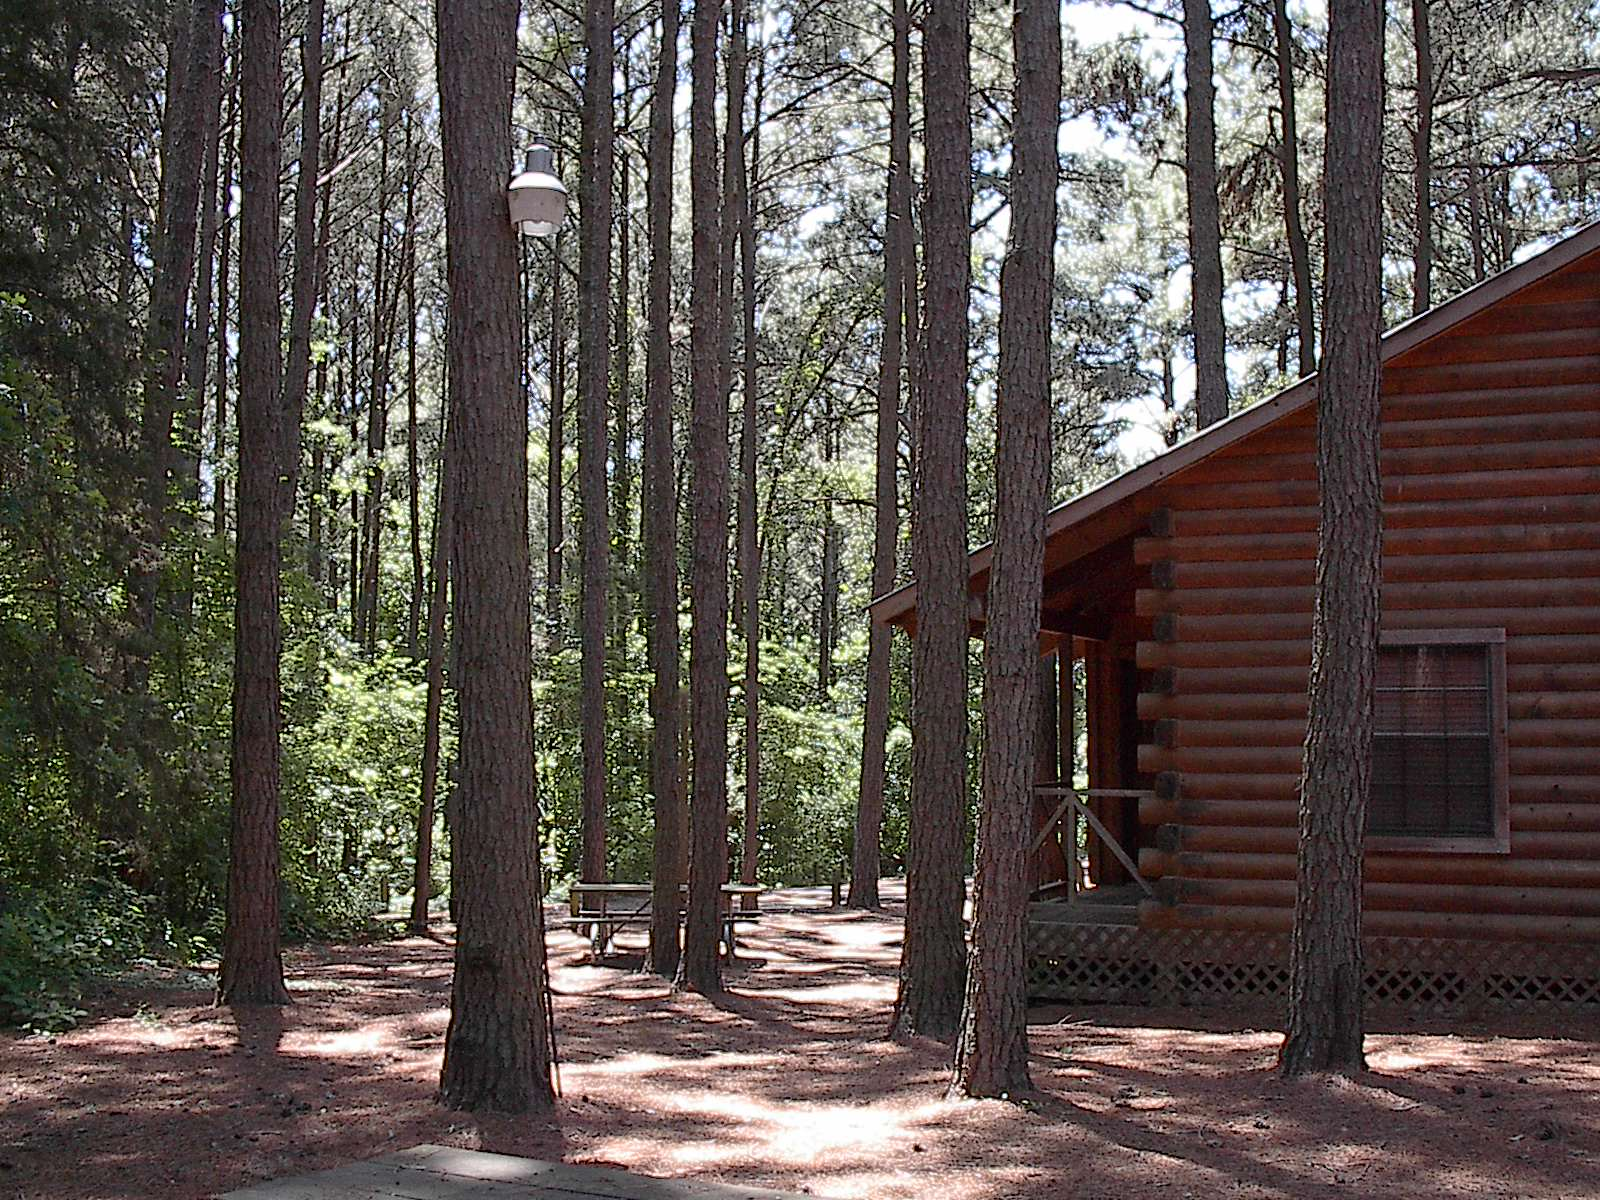 Elevation of bullard tx usa maplogs for Texas cabins in the woods